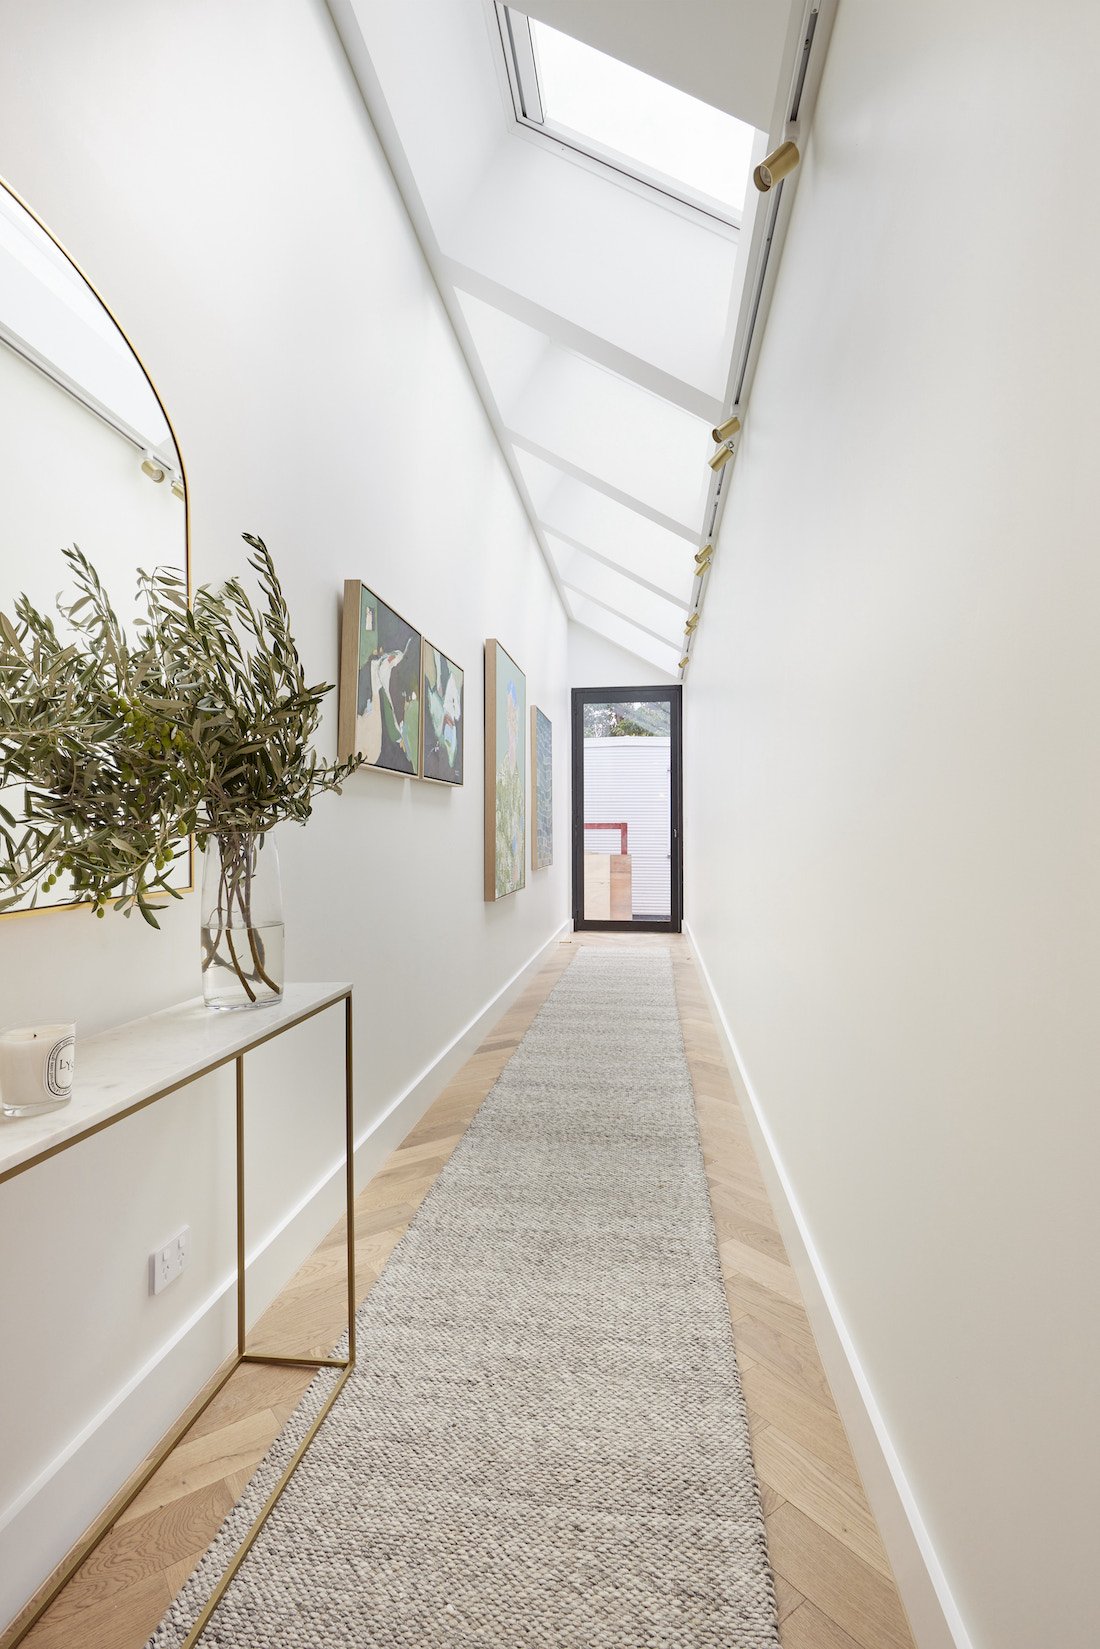 Console table in hallway with skylights